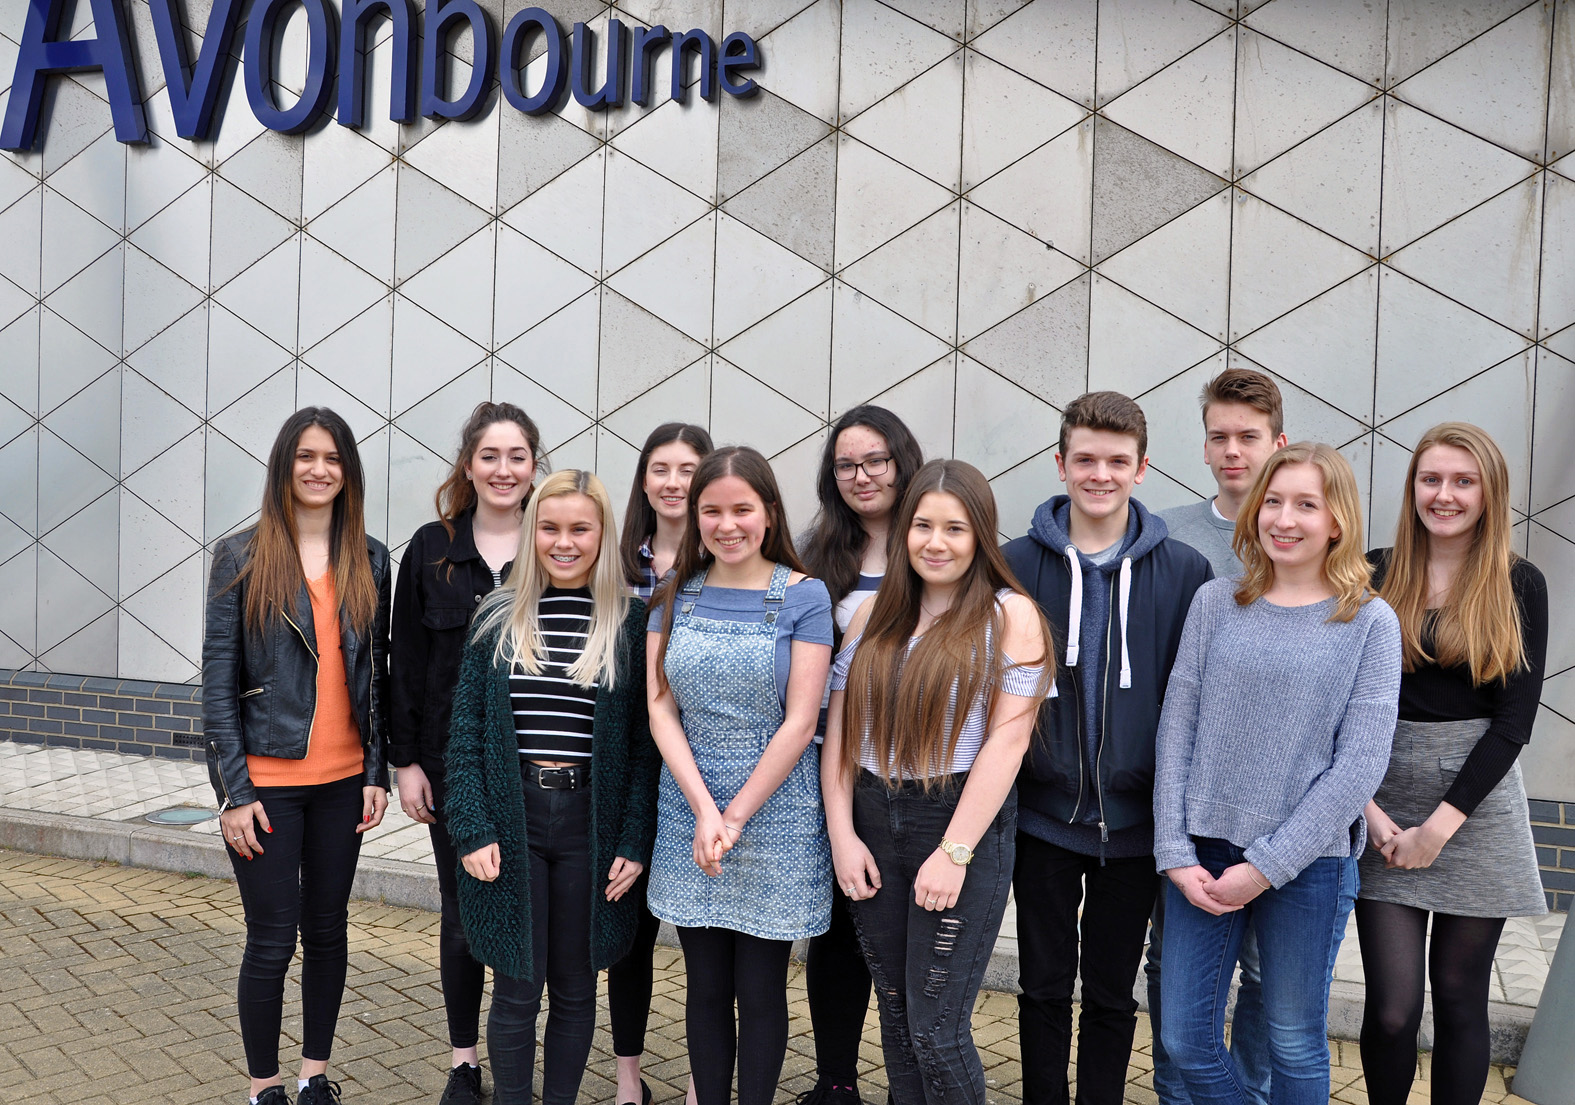 Making the A-grade - some of Avonbourne Trust's 2015 GCSE students who had achieved the prestigious English Baccalaureate qualification. They are all now studying for A-levels at Avonbourne Sixth Form.